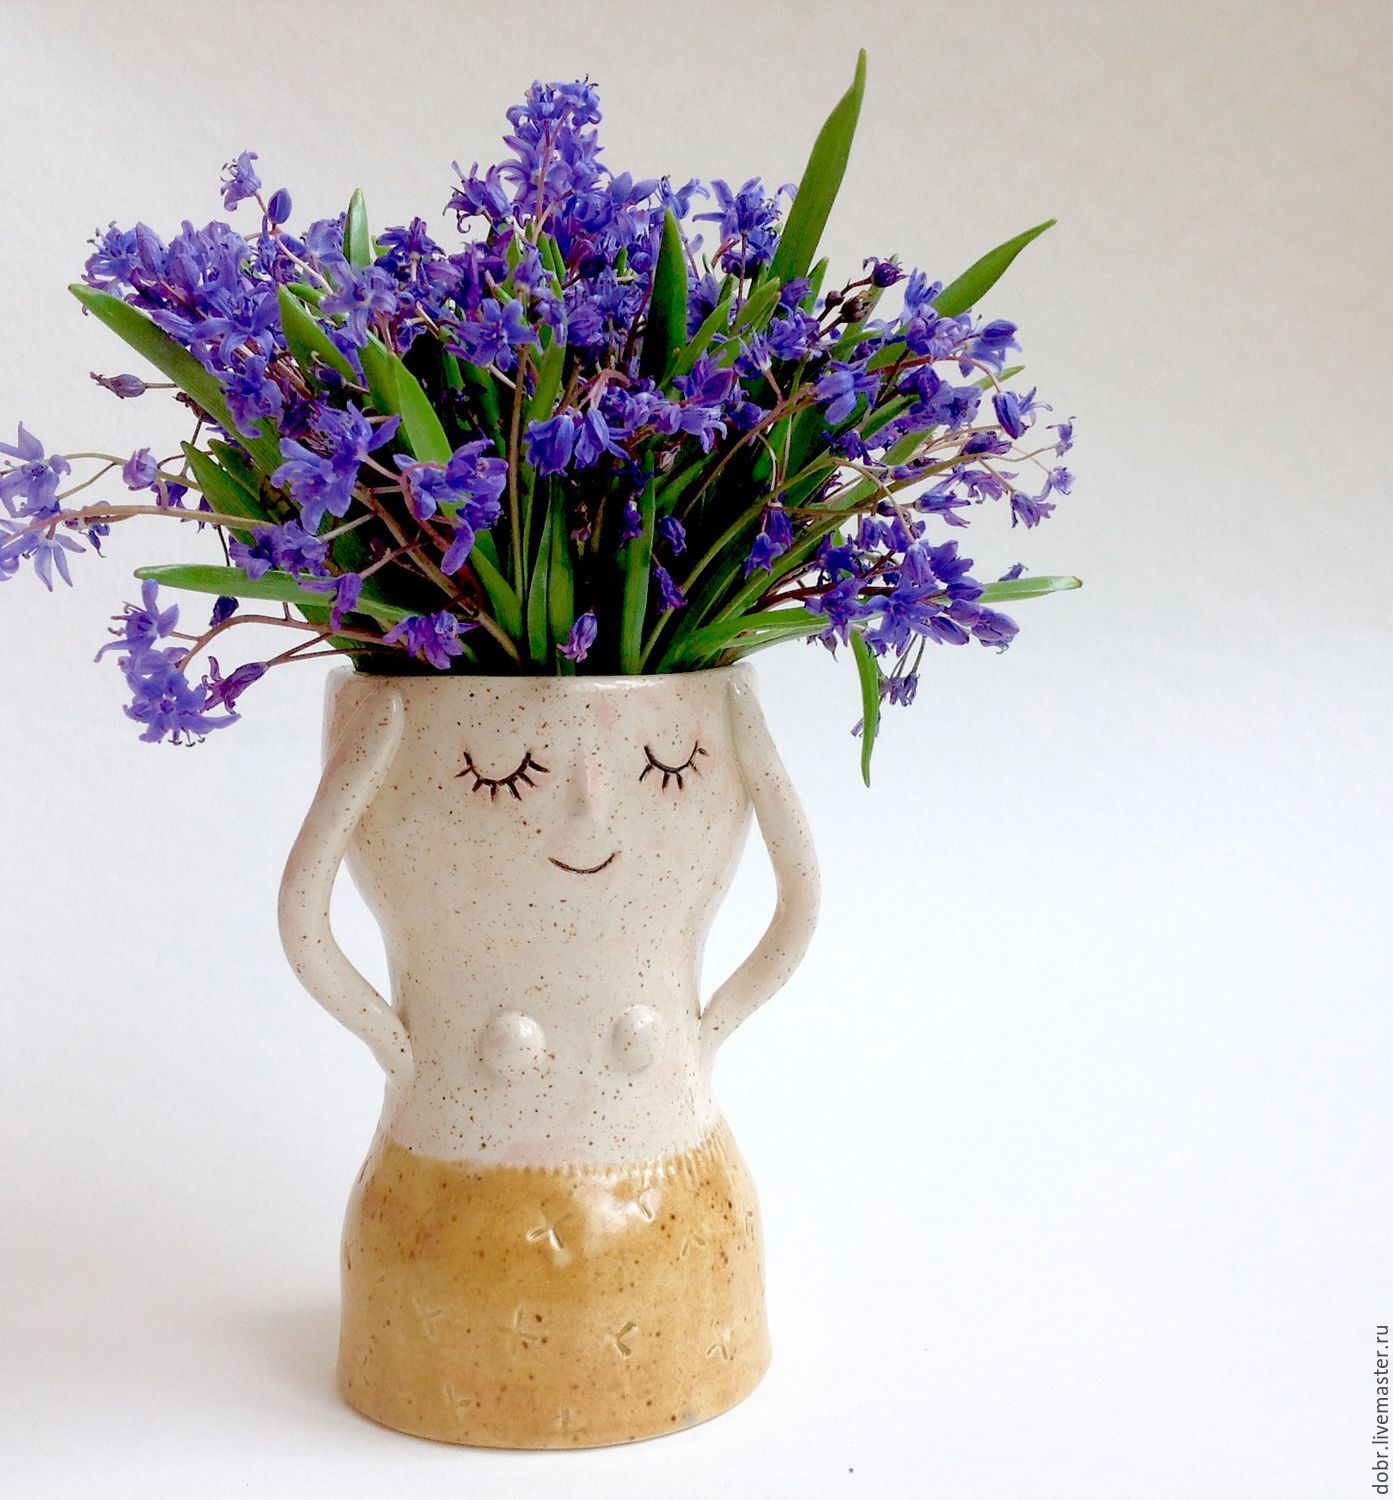 Ceramic vase shop online on livemaster with shipping ceramic vase natalia dobrzhanskayadobrceramics online shopping on my reviewsmspy